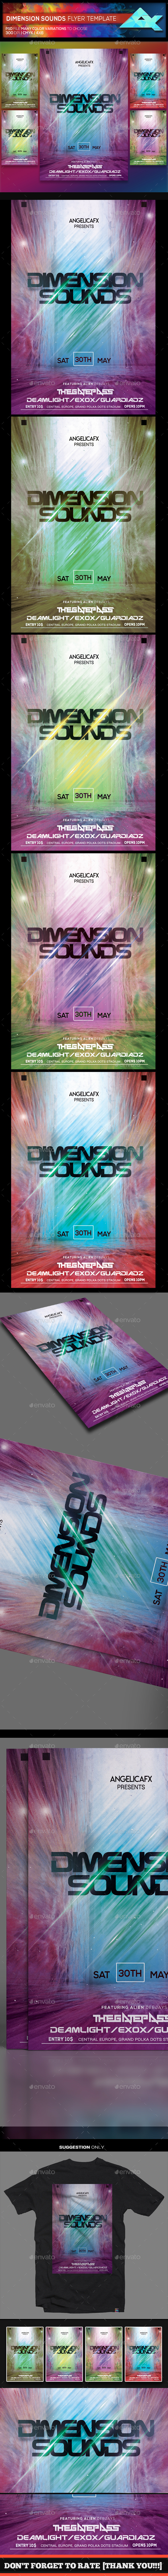 GraphicRiver Dimension Sounds Flyer Template 21095853